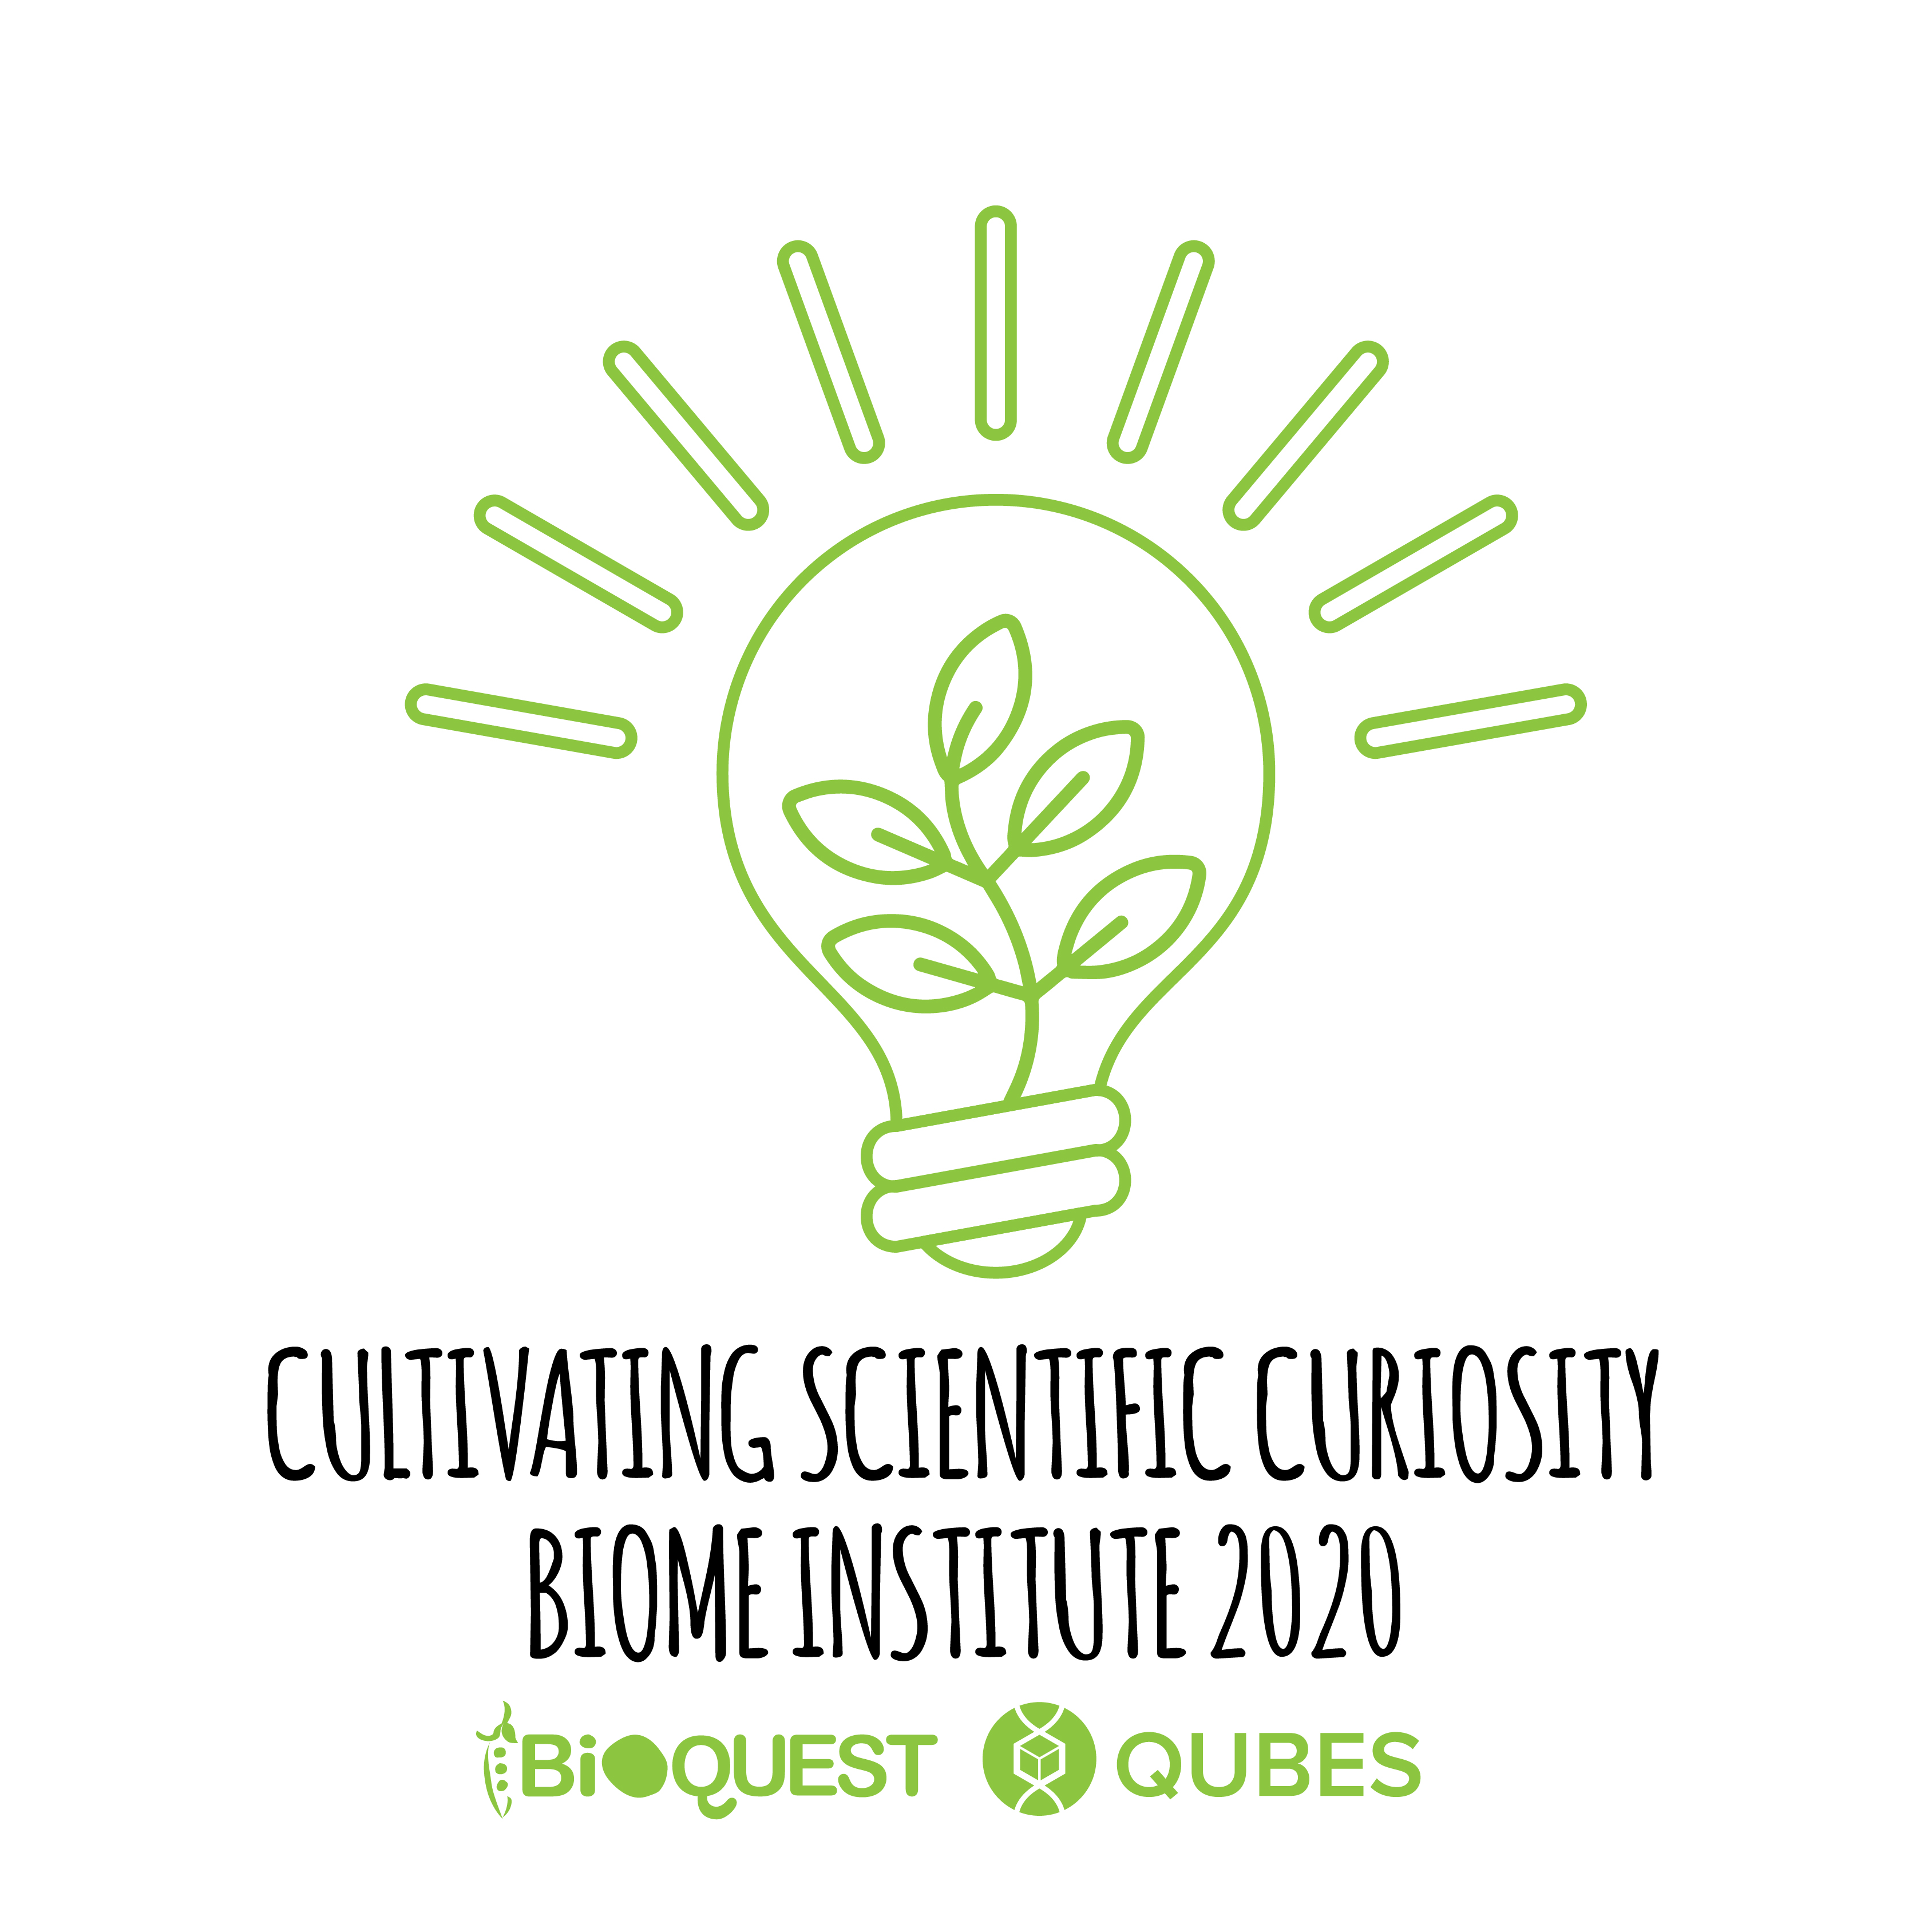 Cultivating Scientific Curiosity group image